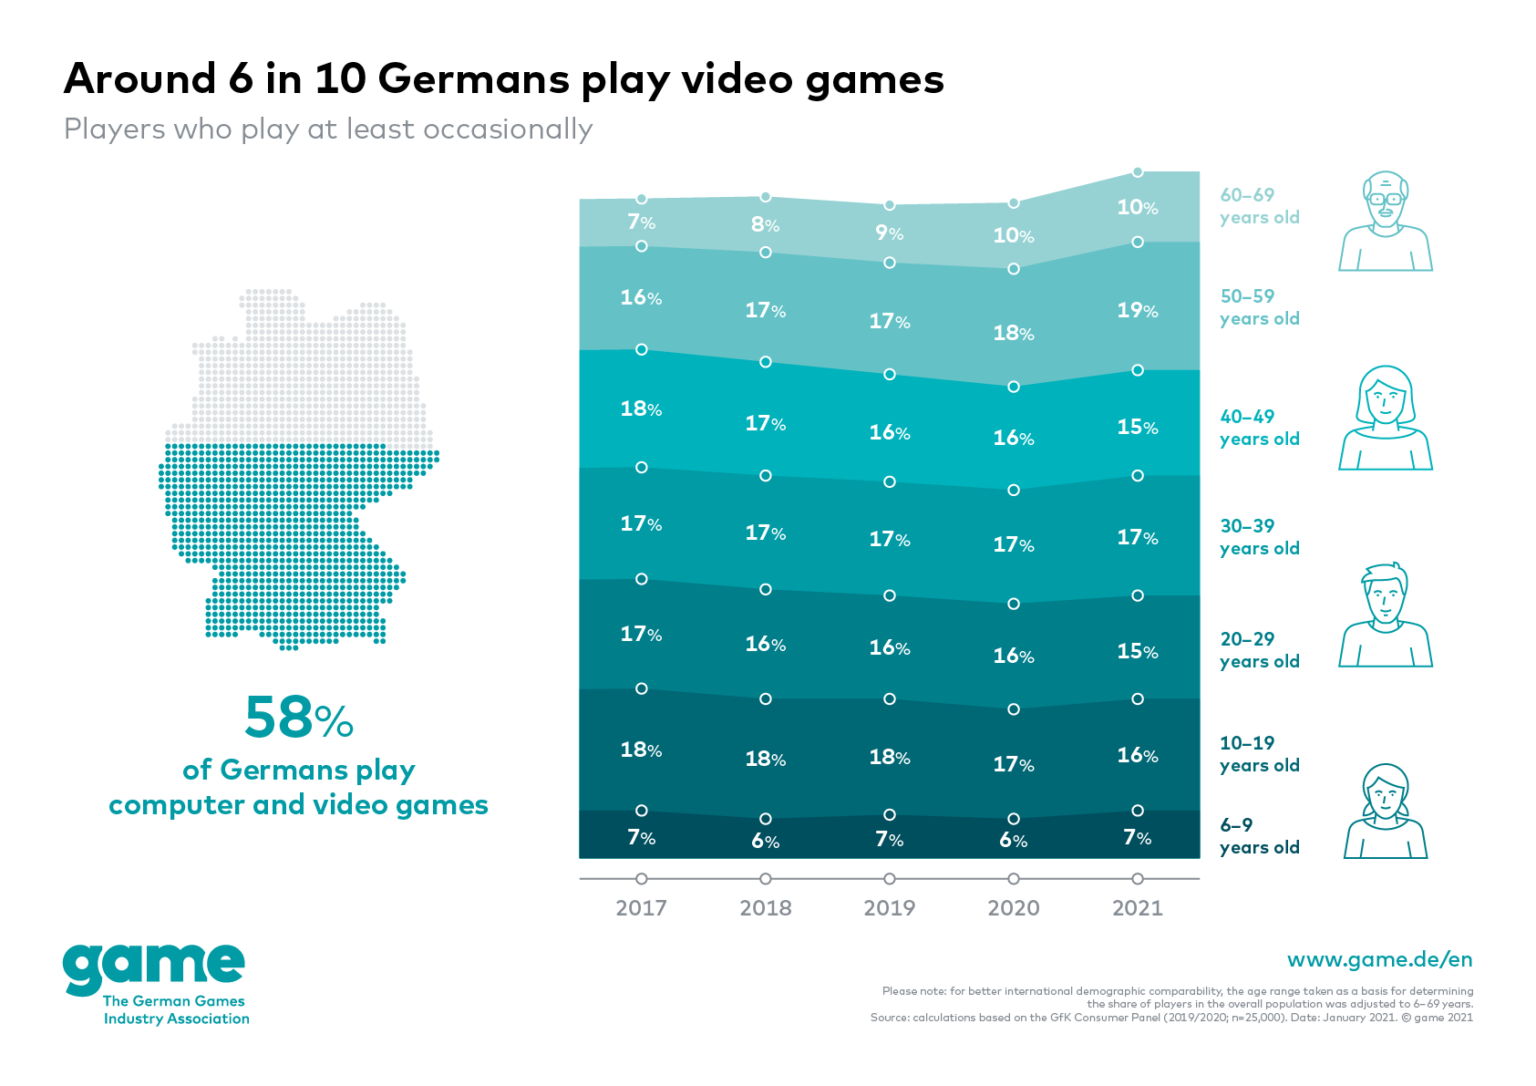 Game demographics in Germany